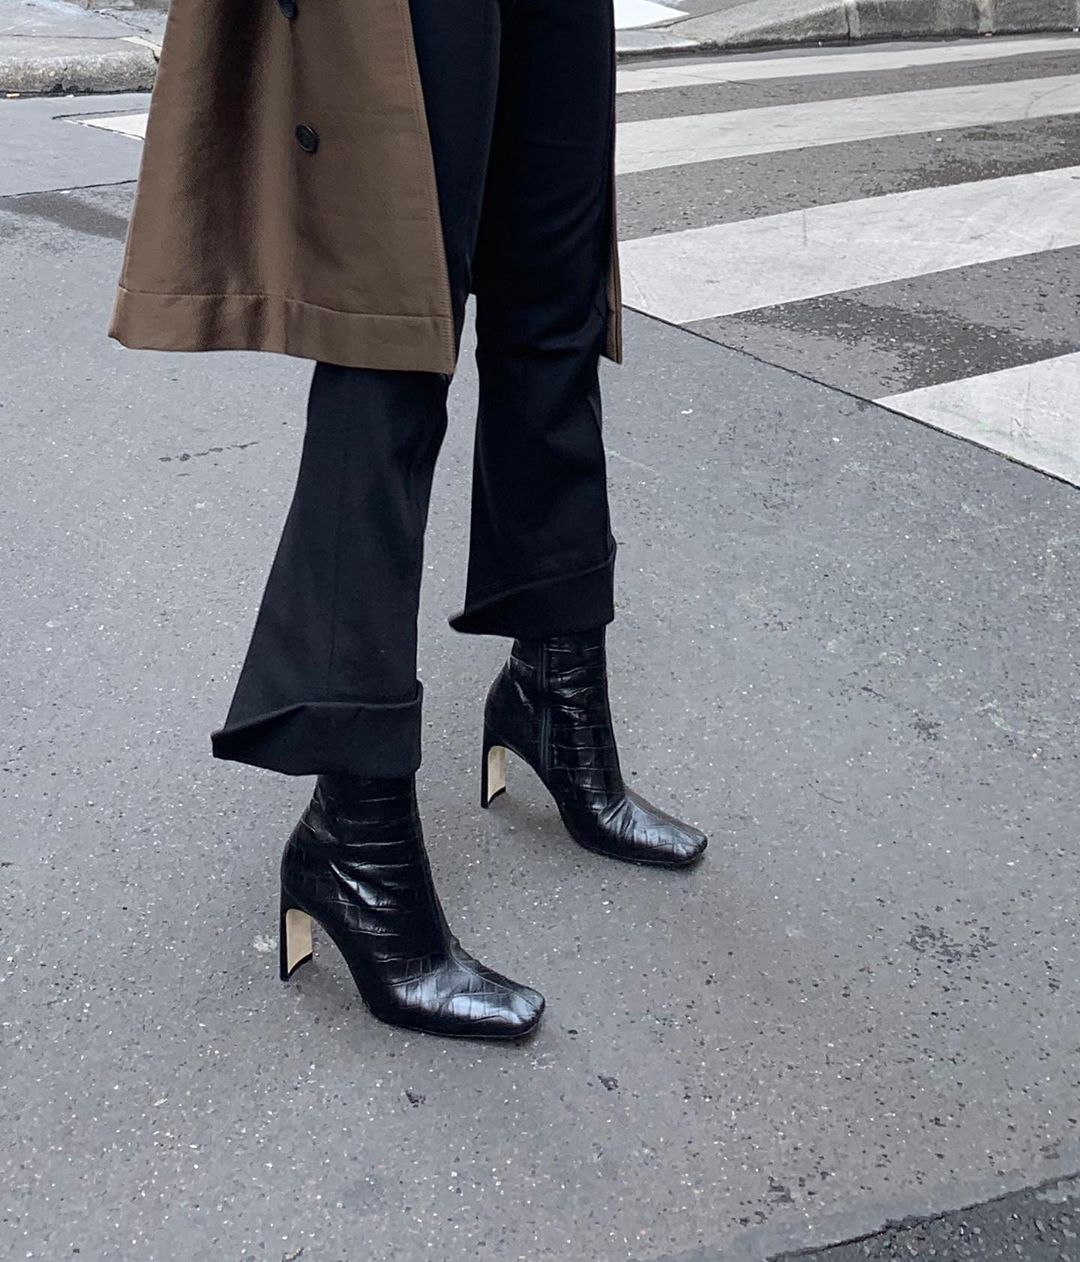 25 of the Coolest Square-Toe Boots to Buy Now